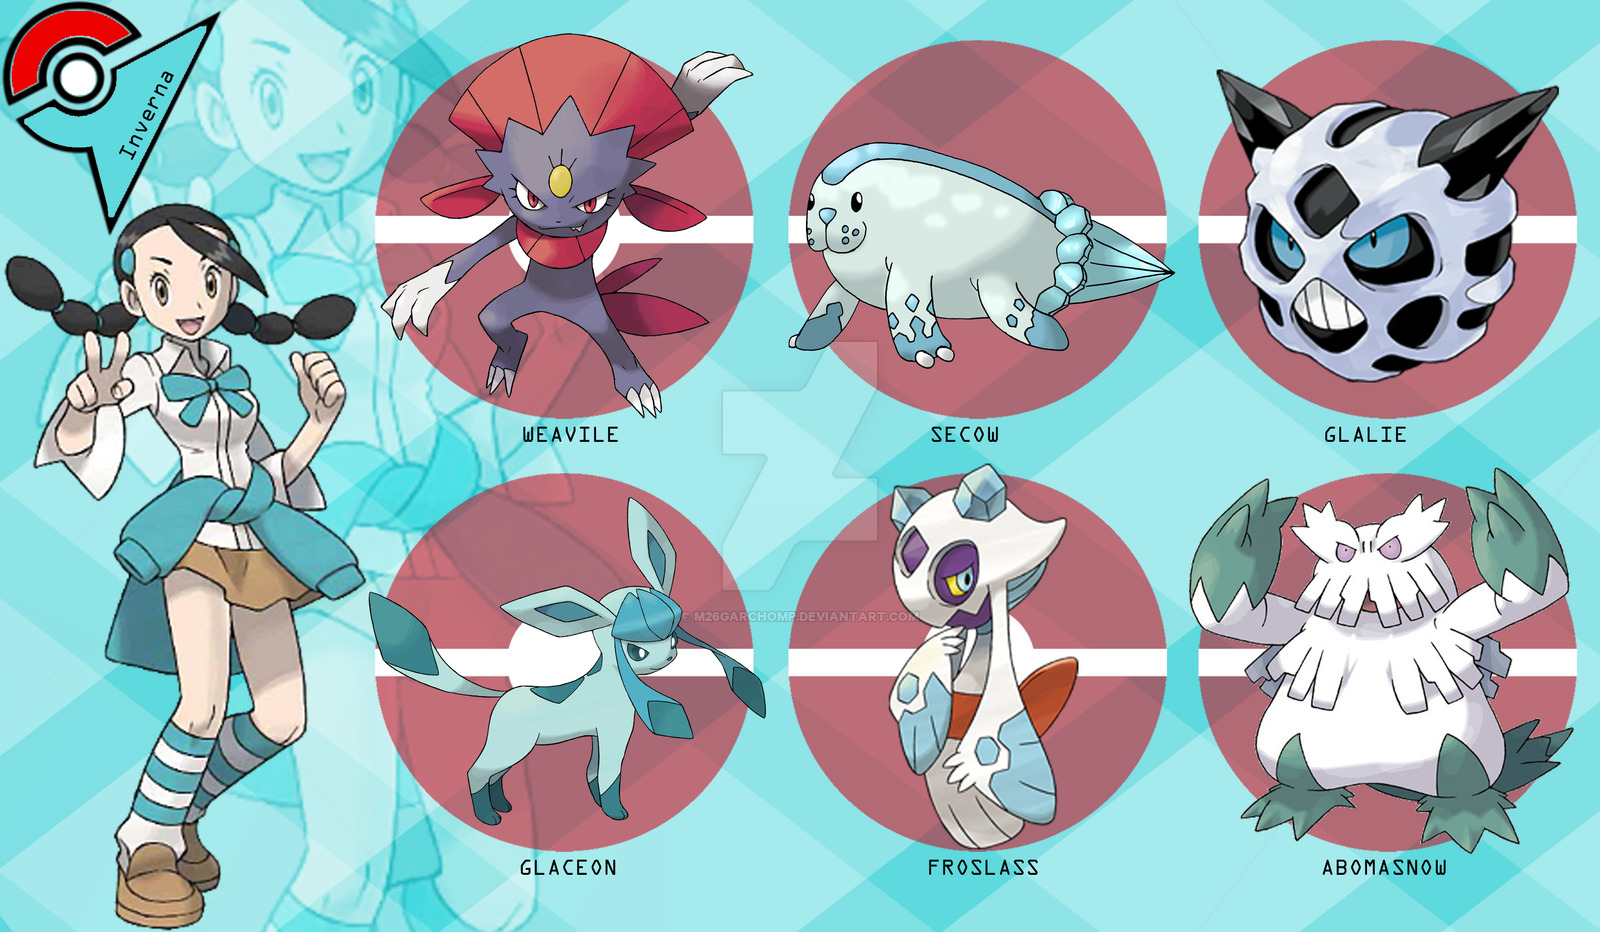 7Gym Leader Sinnoh Candice by M26Garchomp on DeviantArt.